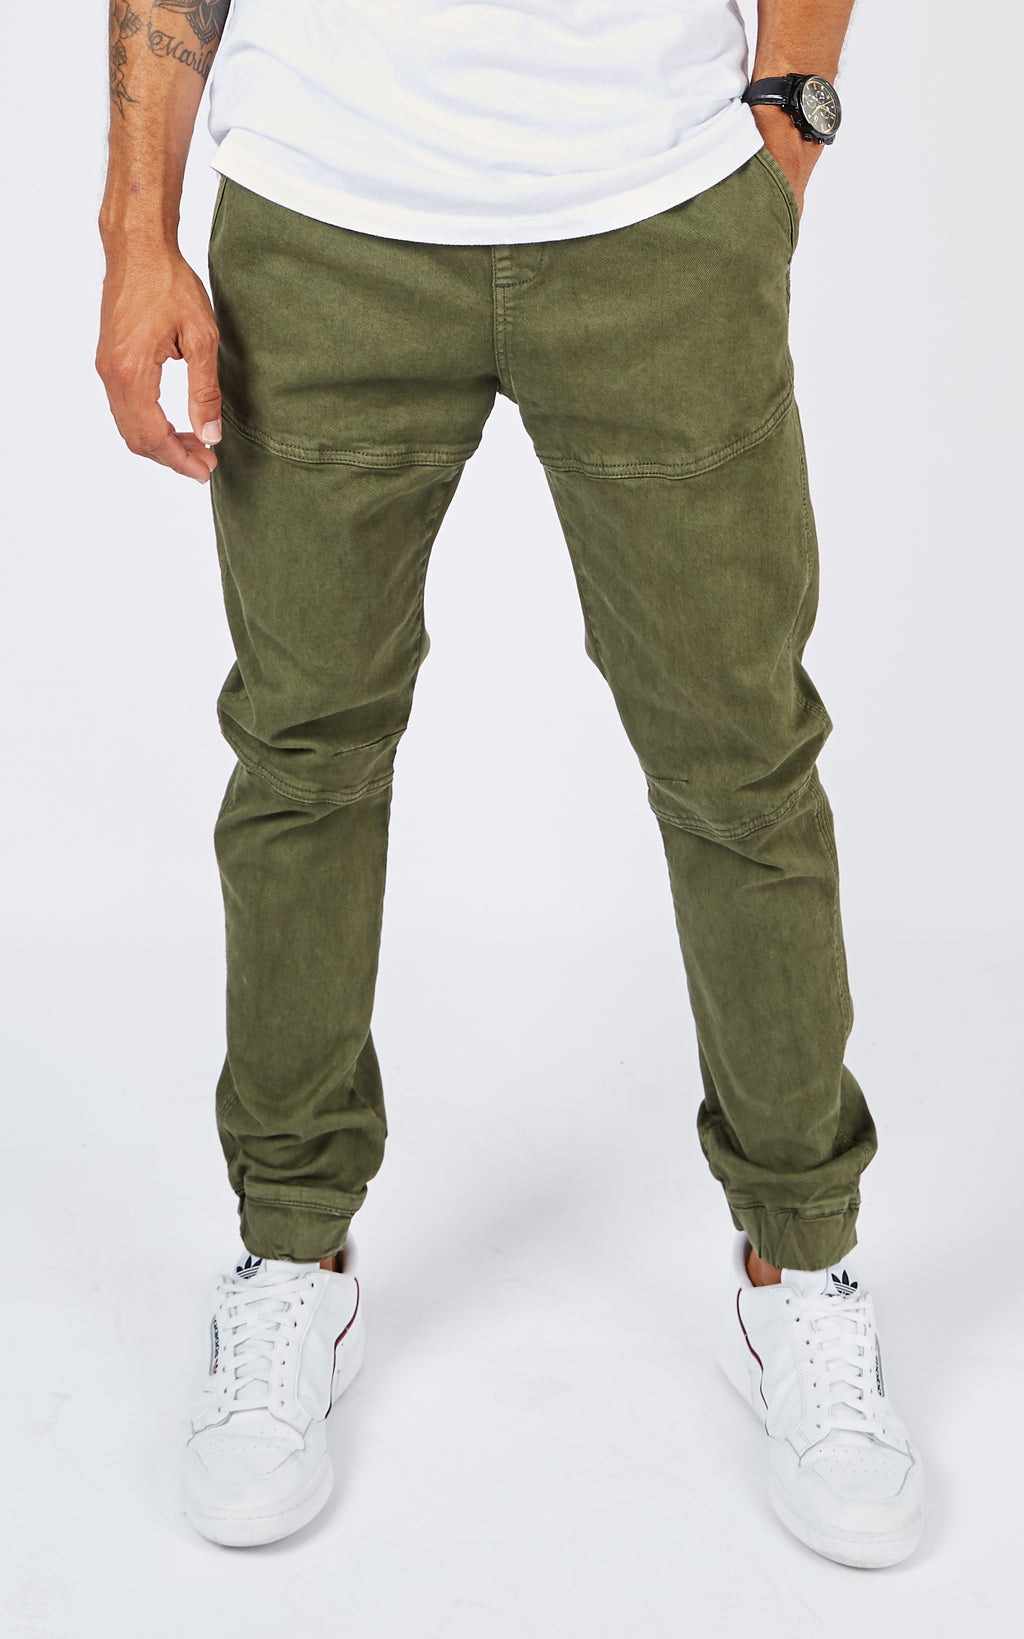 JOGGER ARMY GREEN PANTS